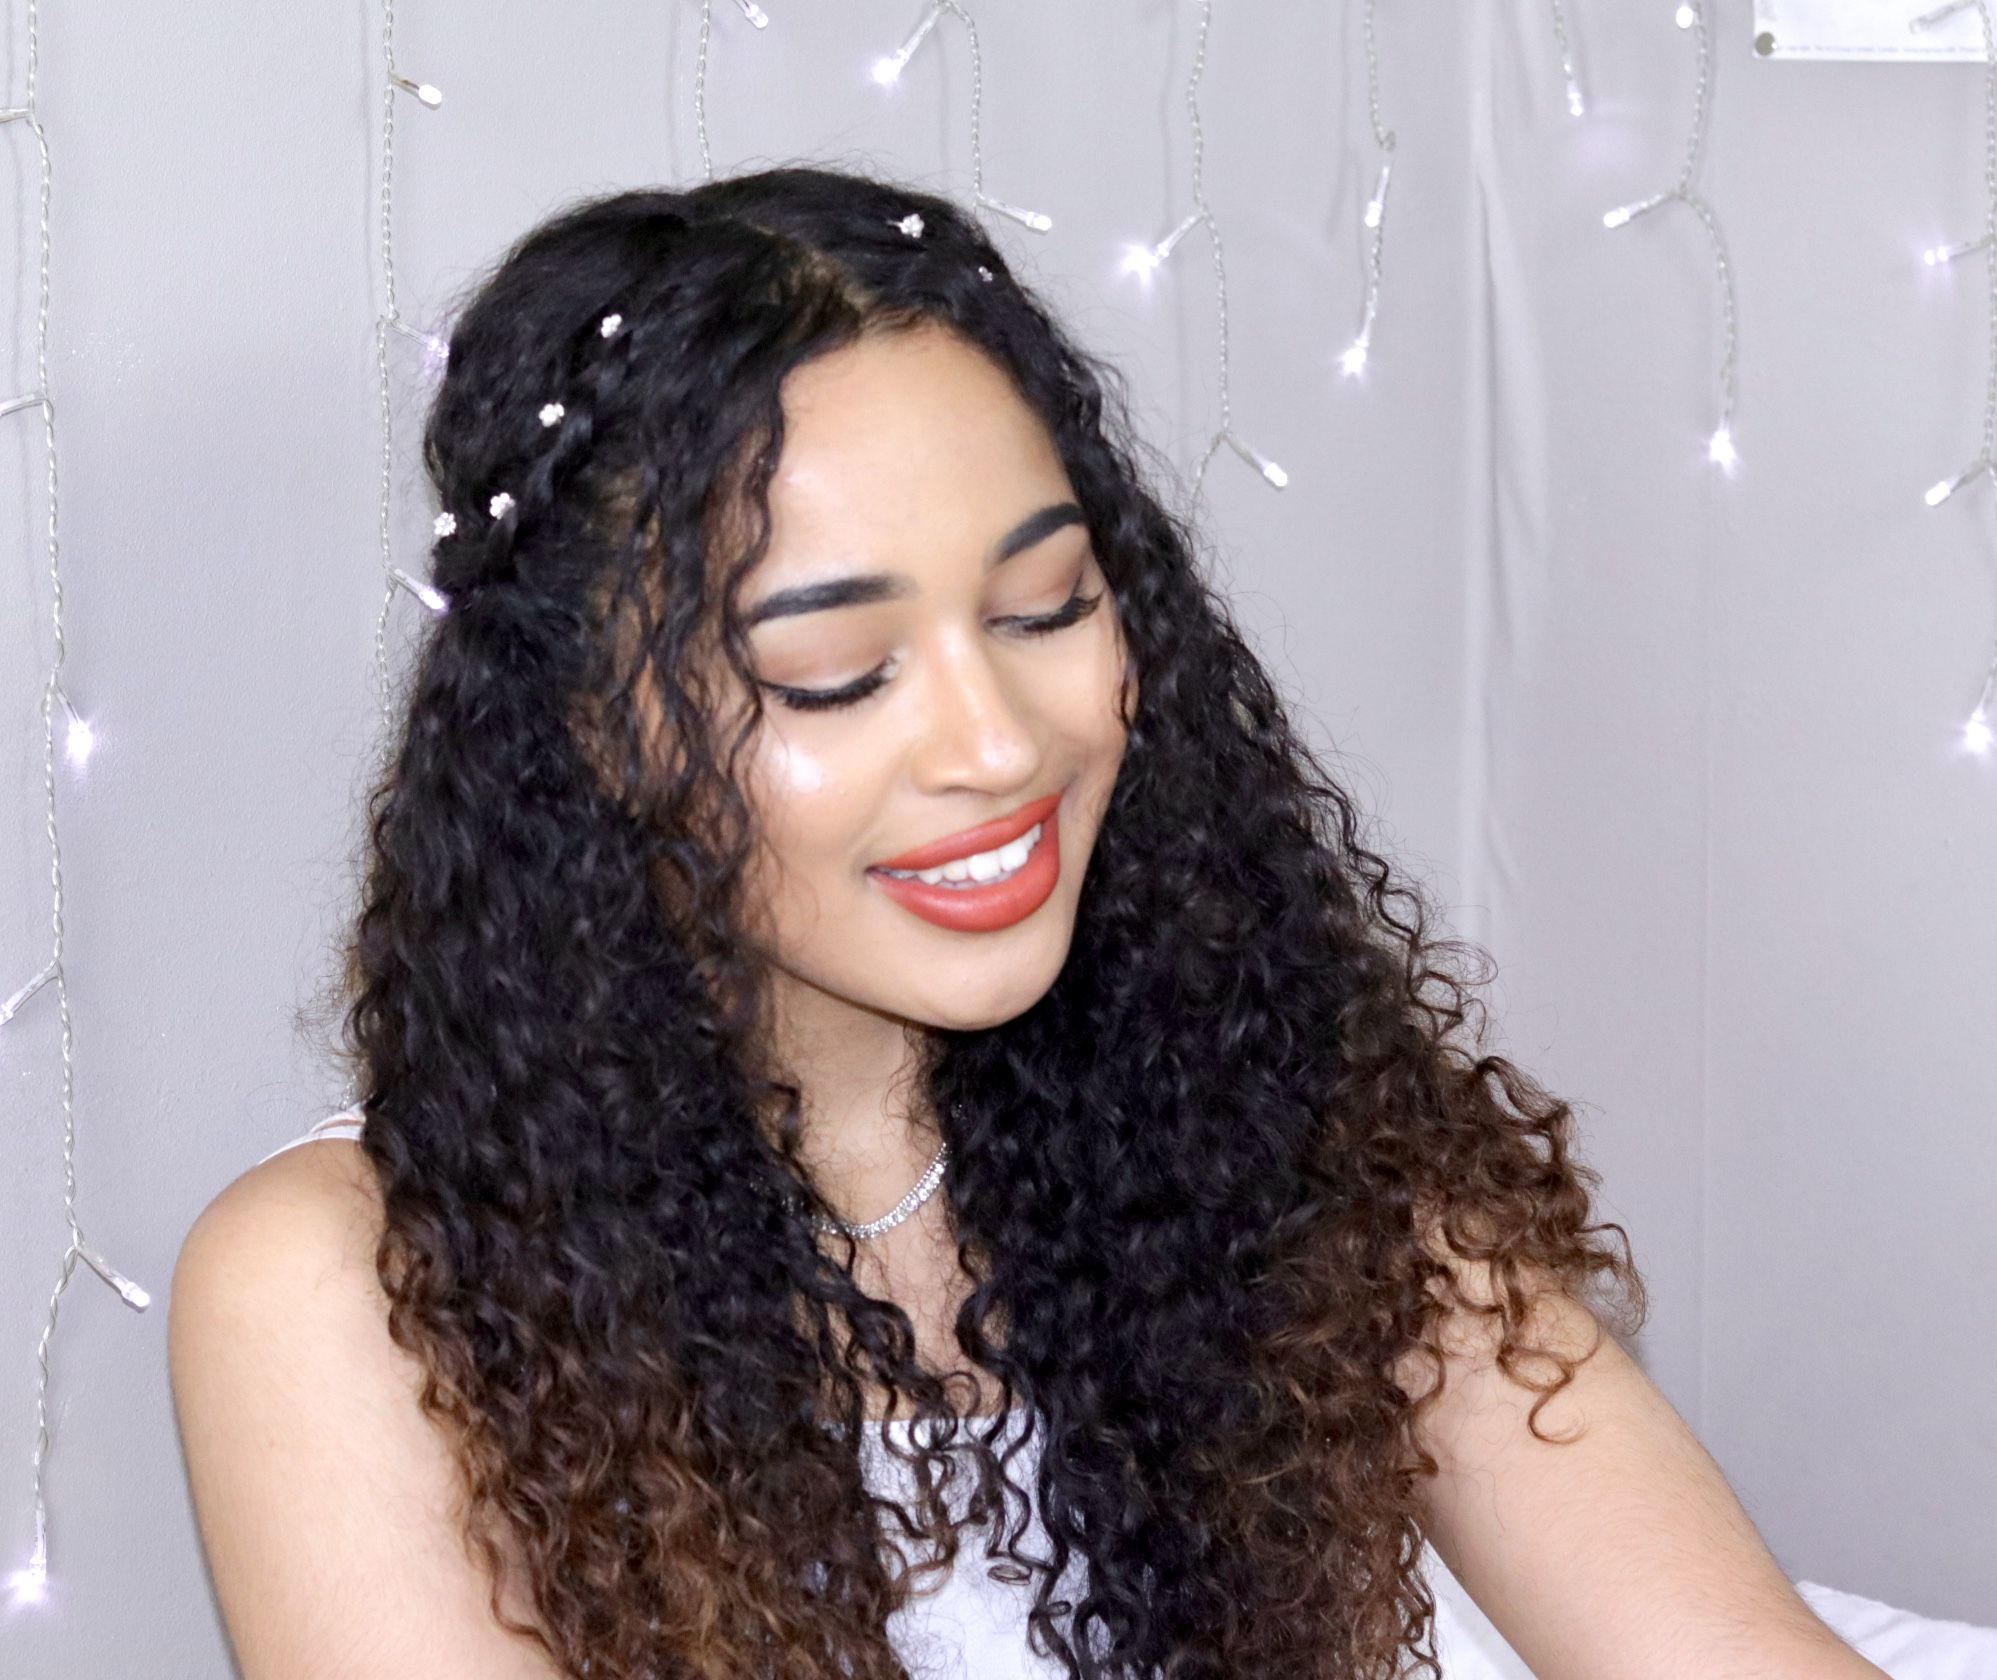 Boho Curly Hairstyles For Prom Weddings Graduation Parties Beautiful Natural Hairstyles By Lana Summe Curly Prom Hair Curly Hair Styles Natural Hair Styles